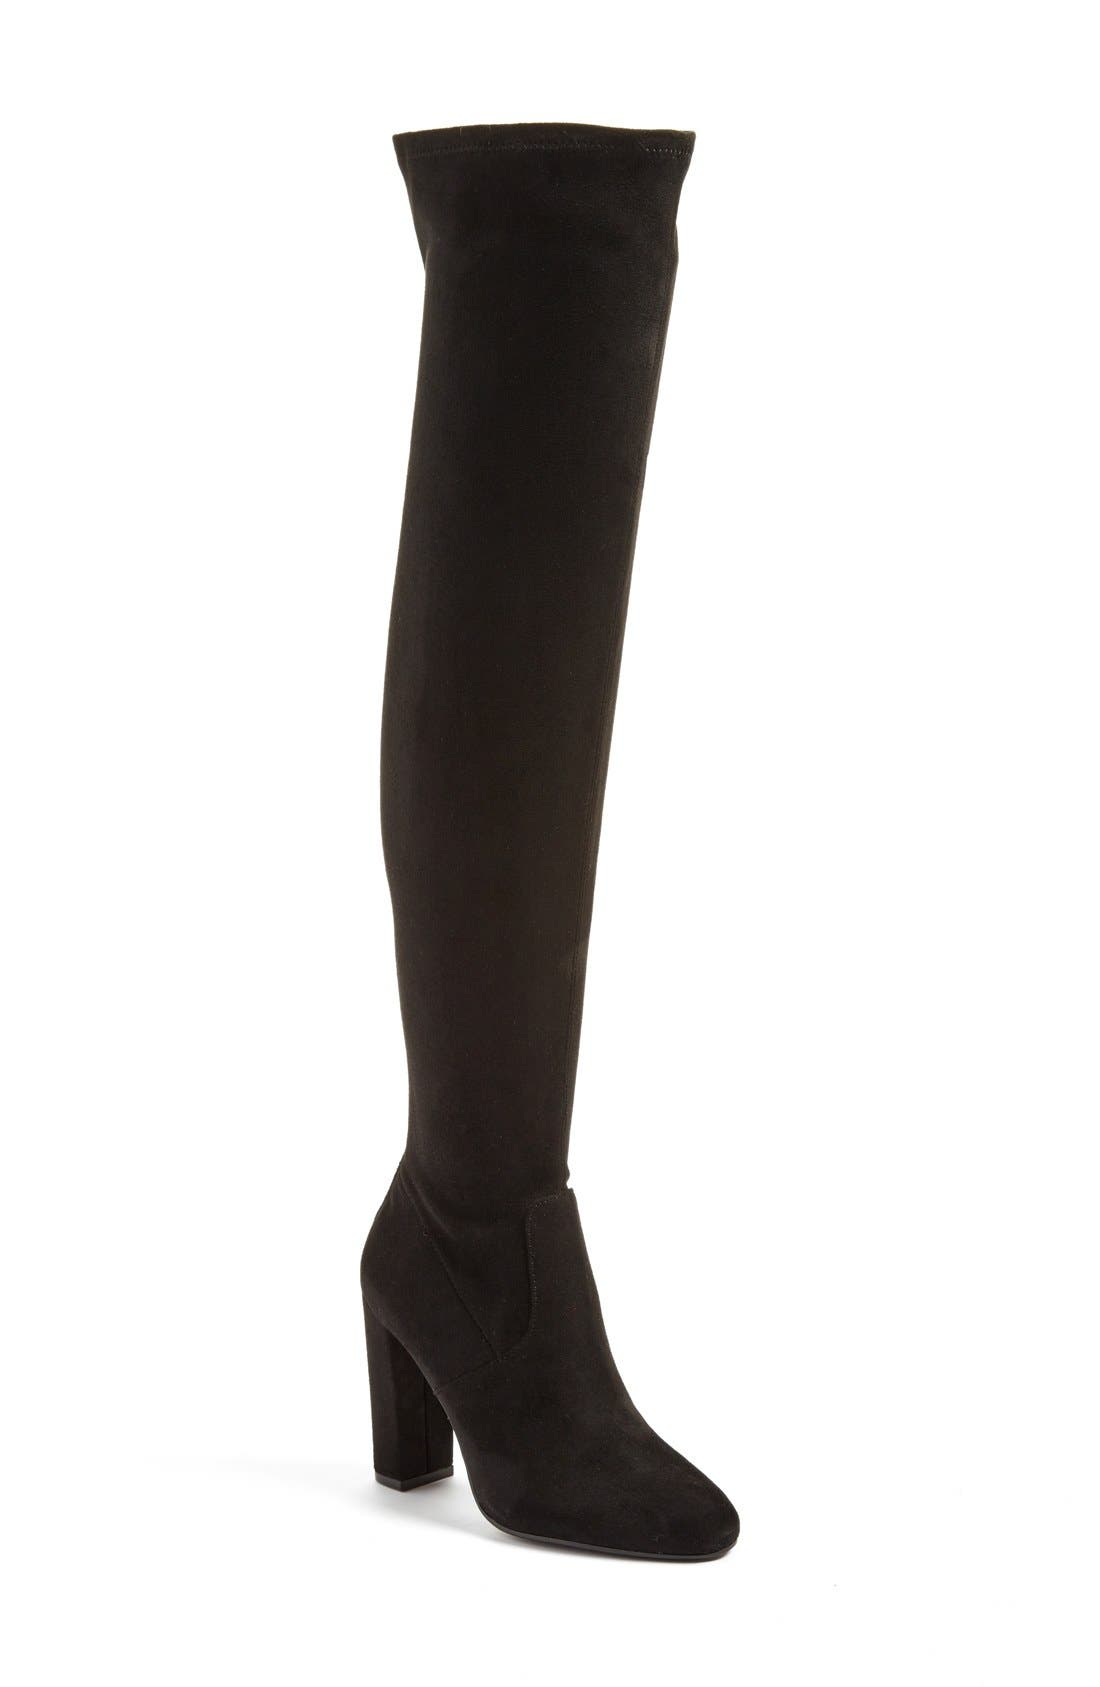 'Emotions' Stretch Over the Knee Boot,                             Main thumbnail 1, color,                             001